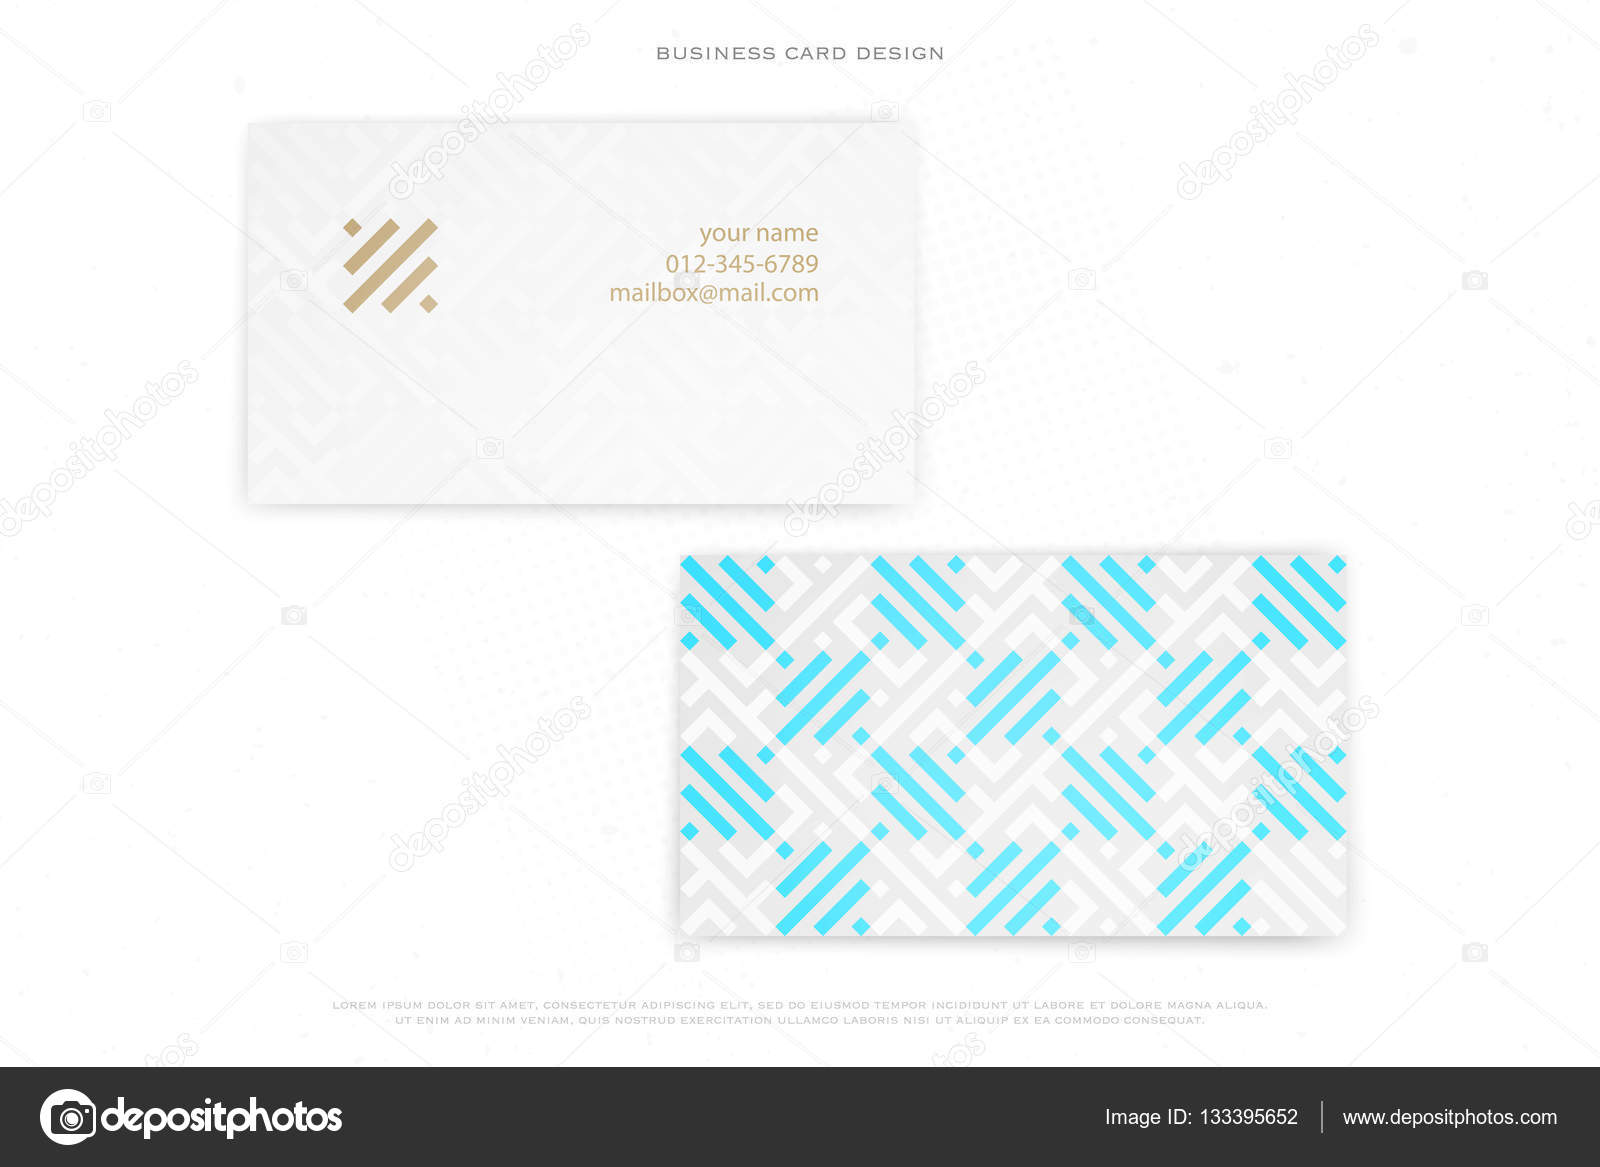 Minimal Design Business Card Isolated On White Background Vector Corporate Cards With Stylish Pattern And